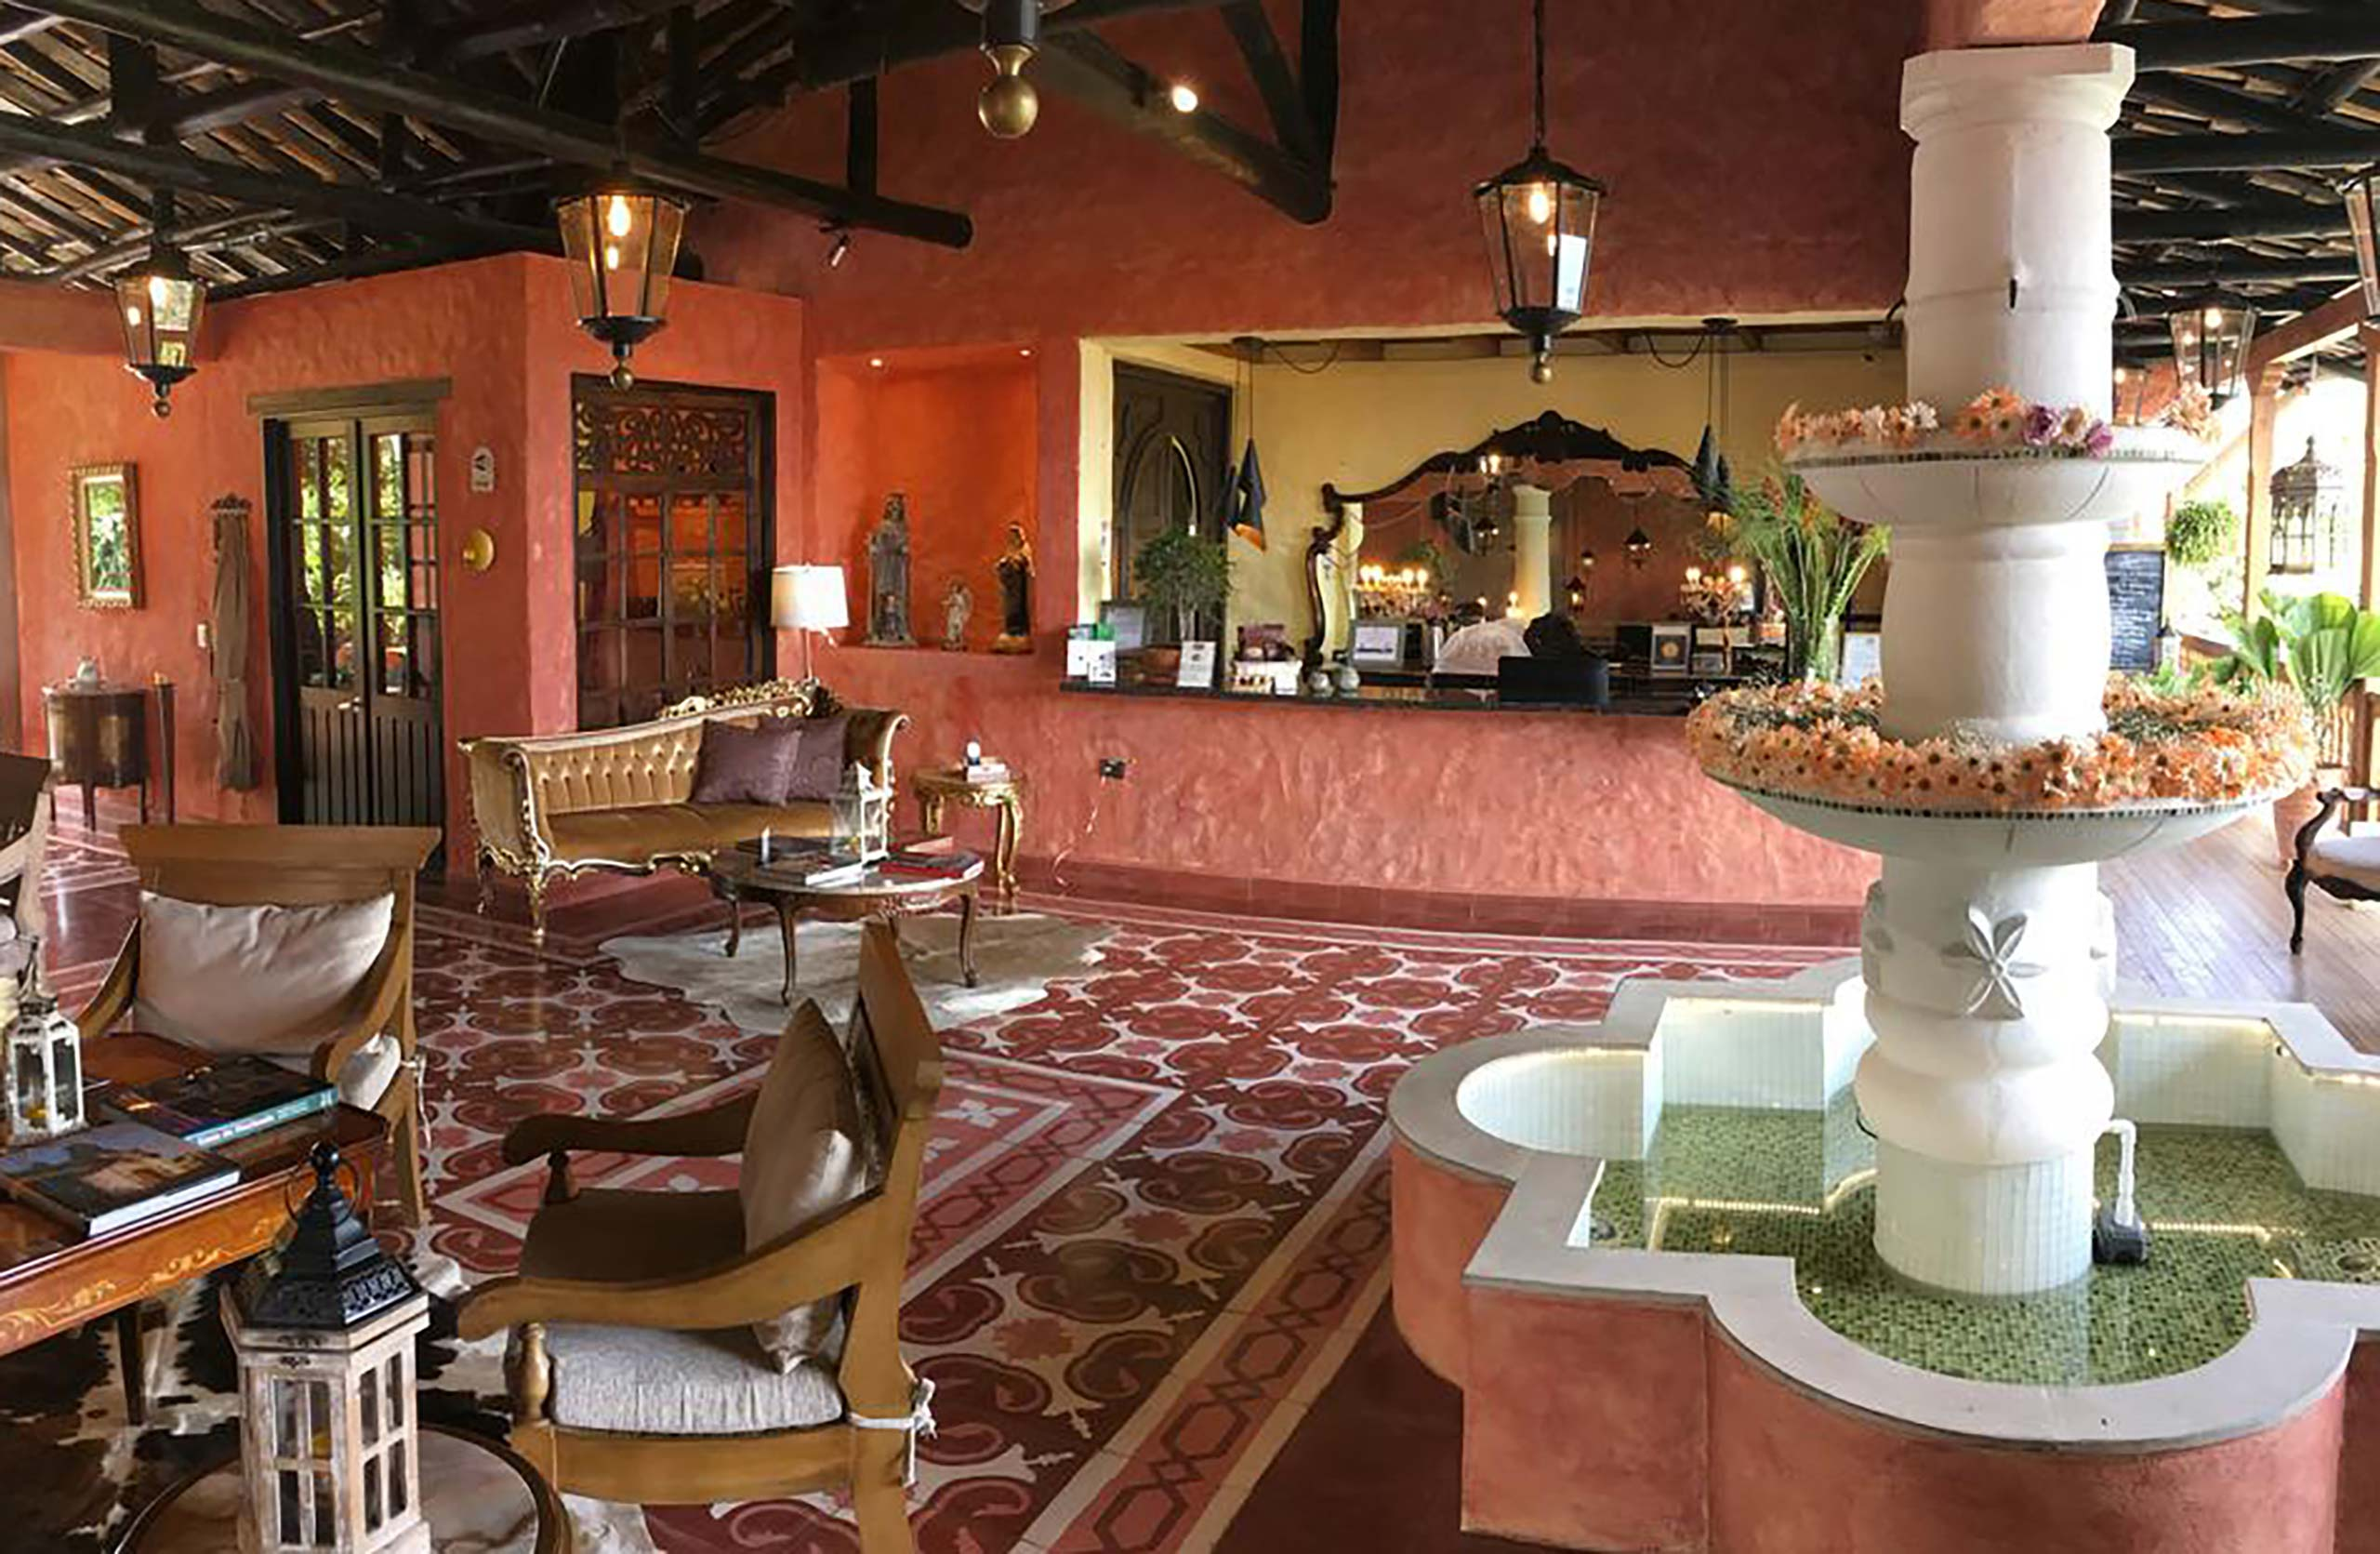 Reception desk in a pink room filled with couches and arm chairs. Off to the side is a large white fountain with water in it